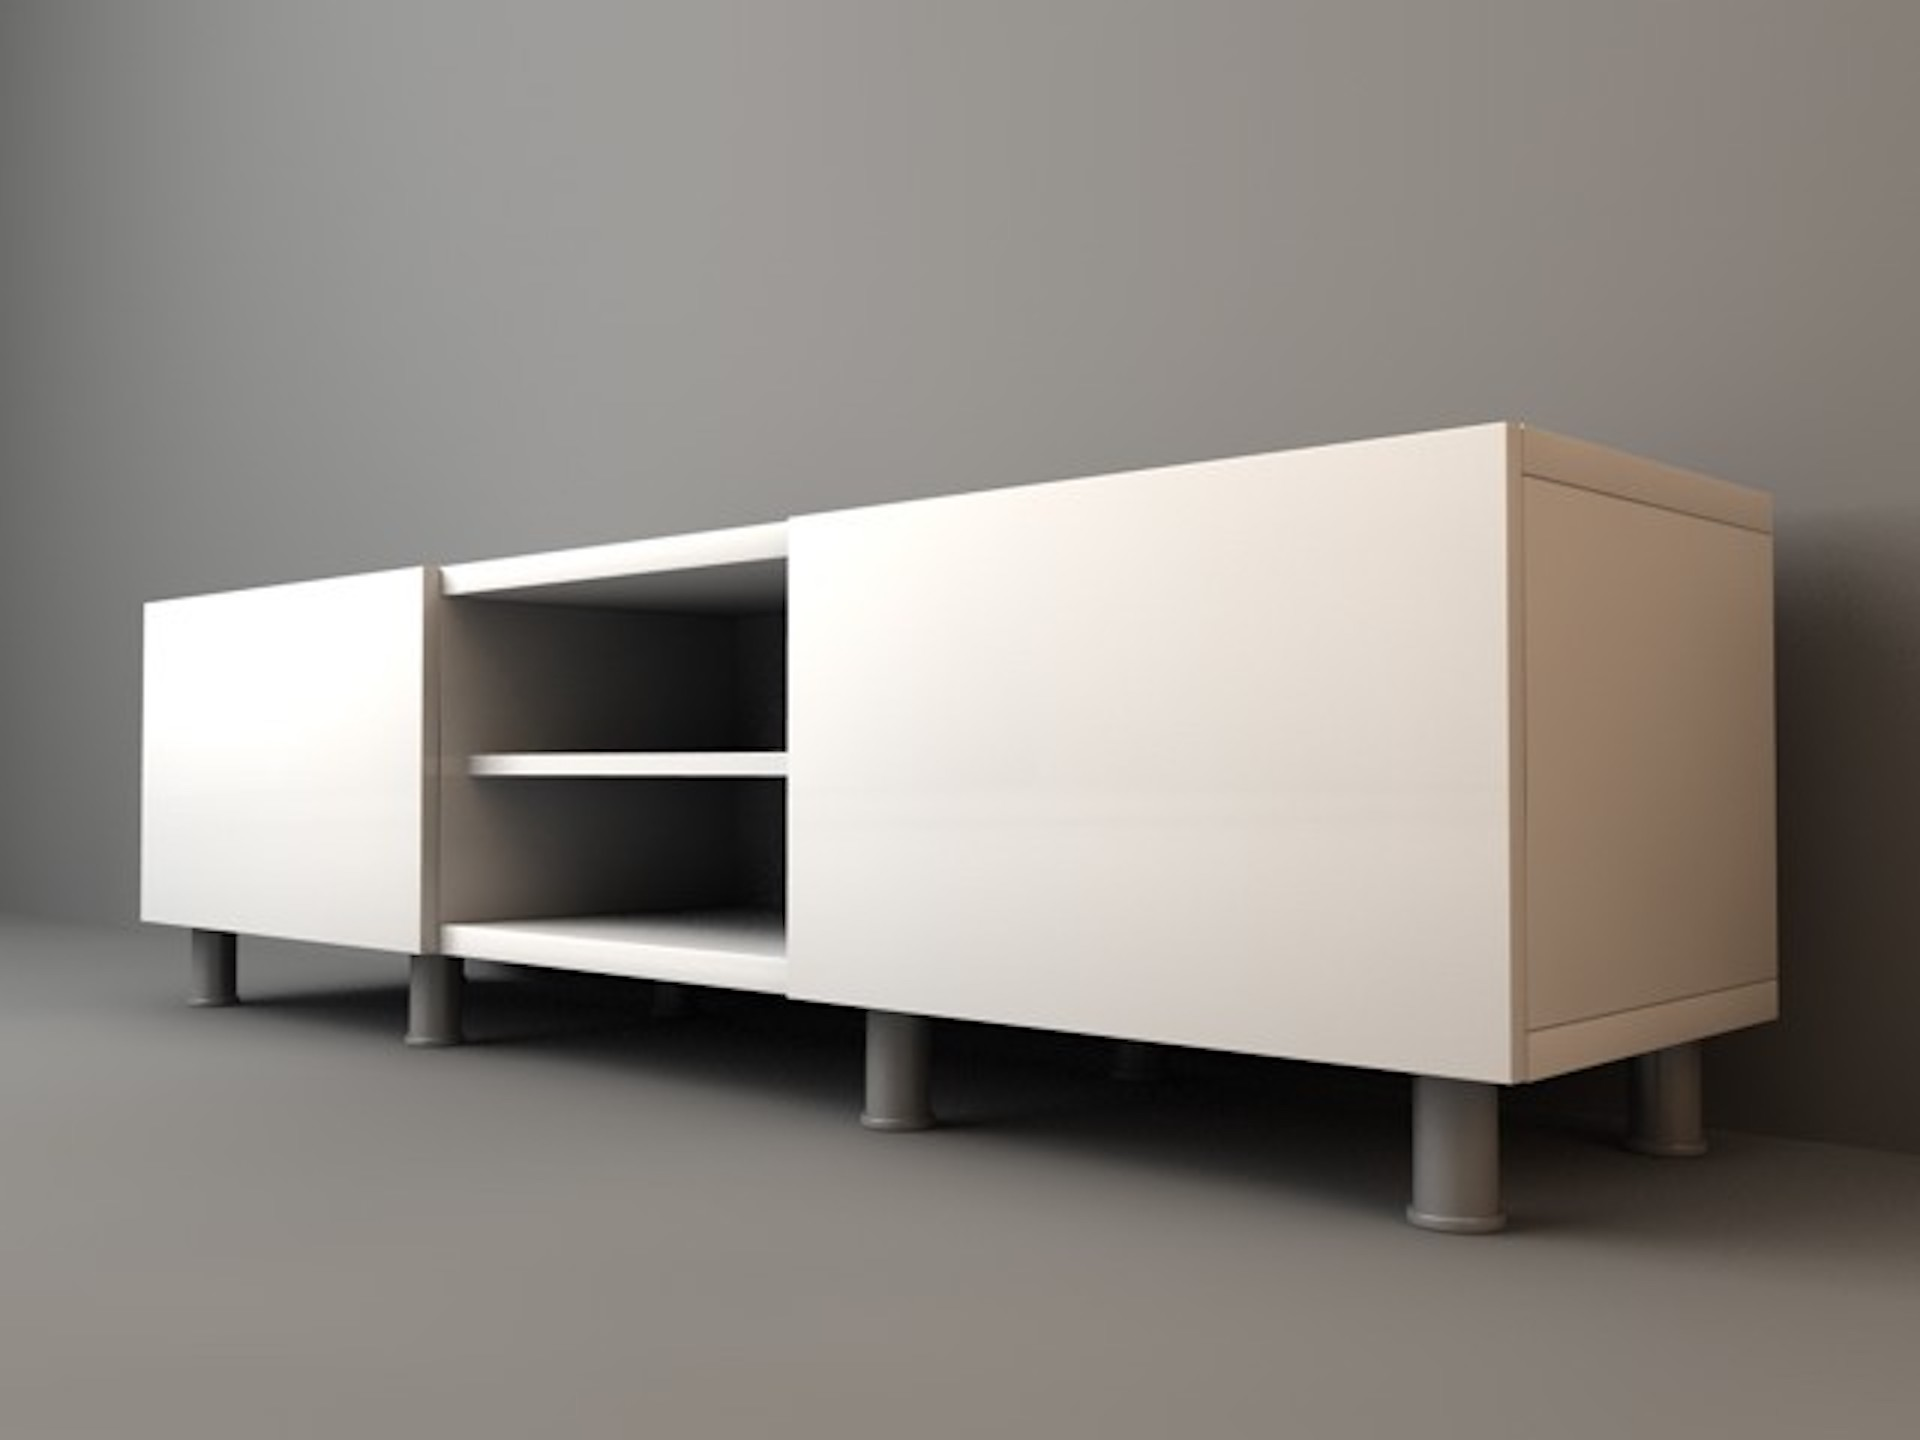 Porta tv modelli download c4dzone - Mobile porta tv ikea ...